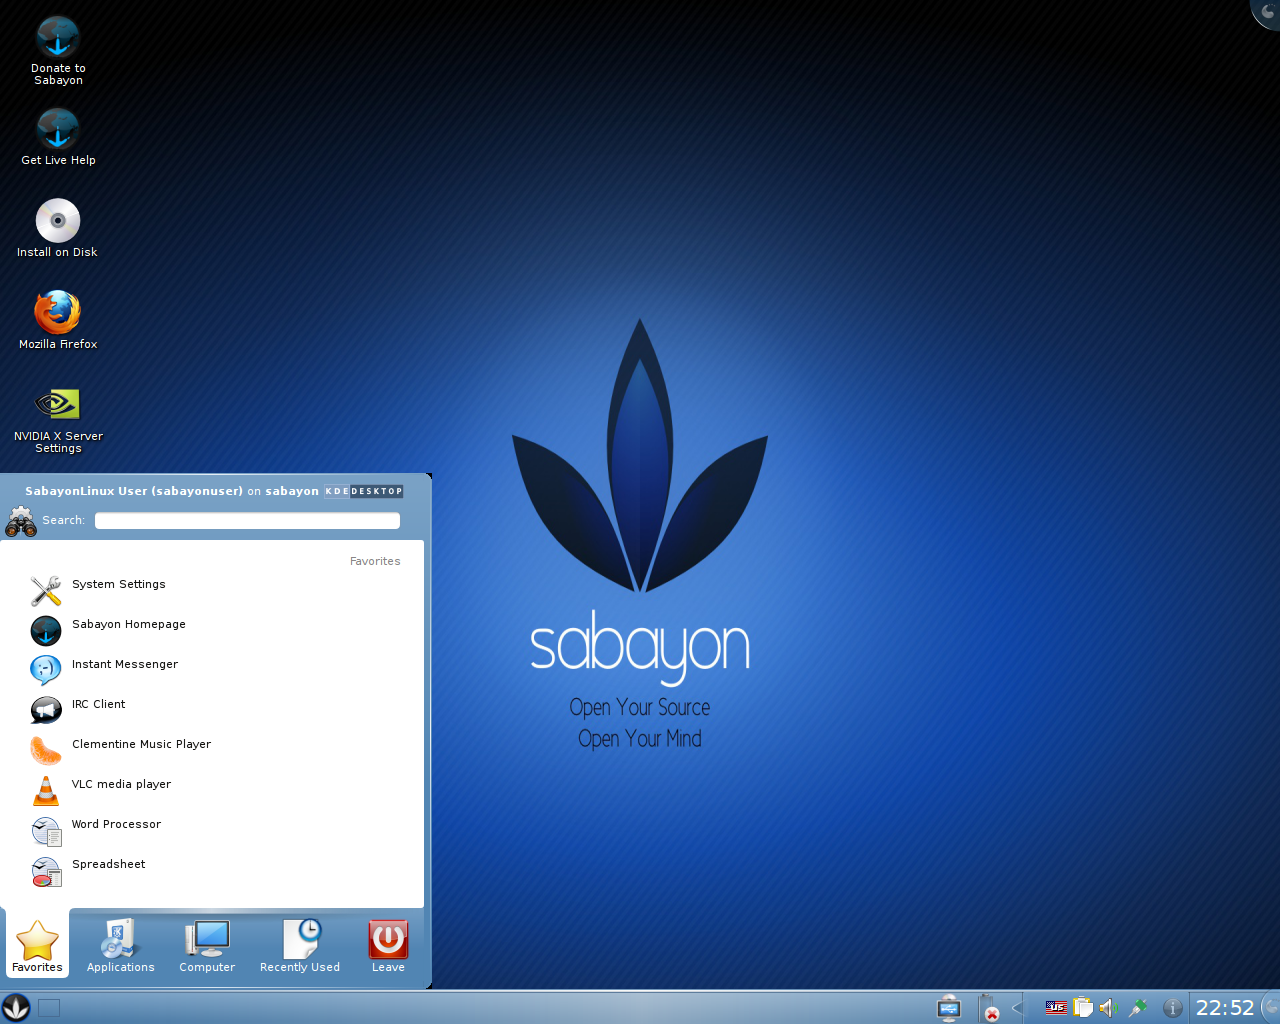 File:Sabayon 5.2 screenshot.png - Wikimedia Commons